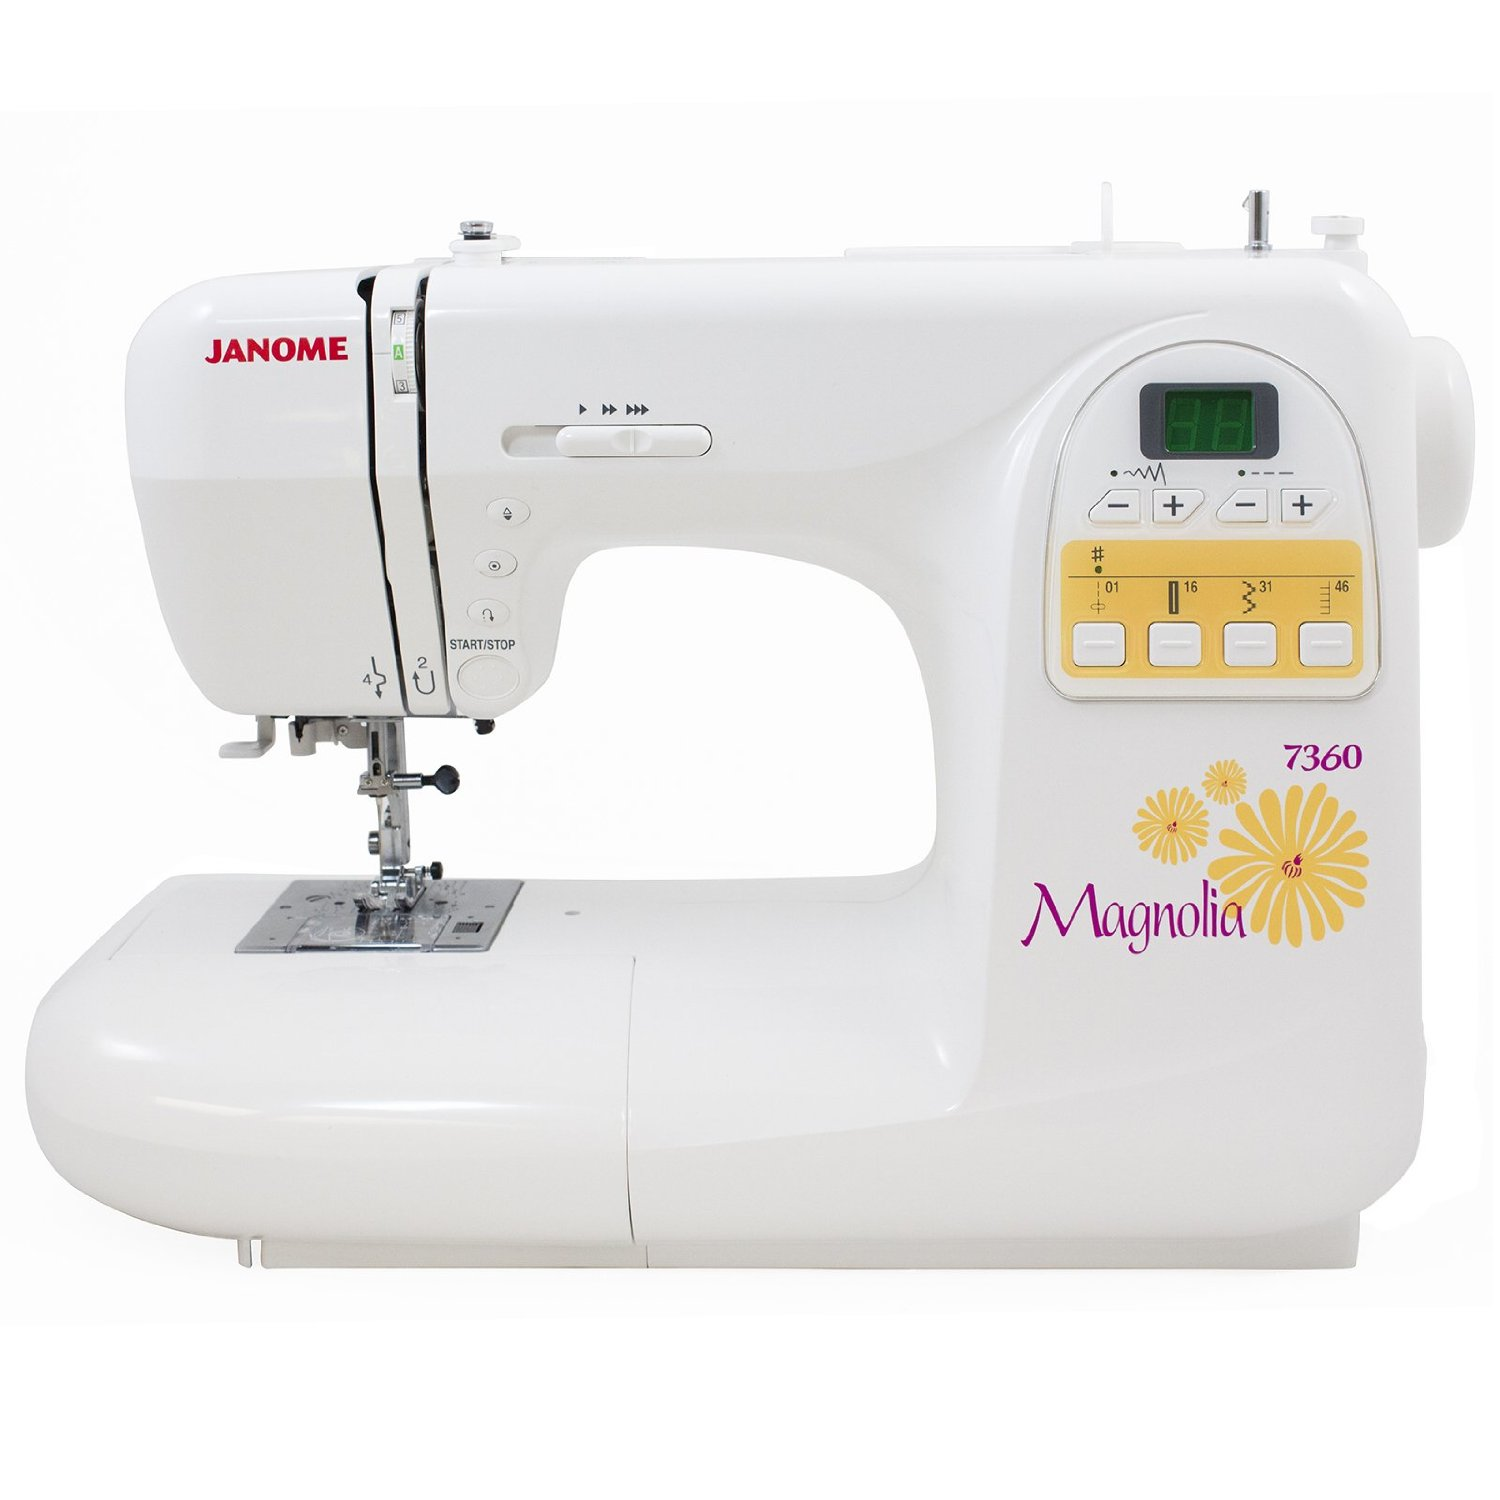 Shop for Janome Sewing Machine Accessories in Sewing. Buy products such as Janome Sewing Machine Tote Bag in Giraffe Pattern at Walmart and save.